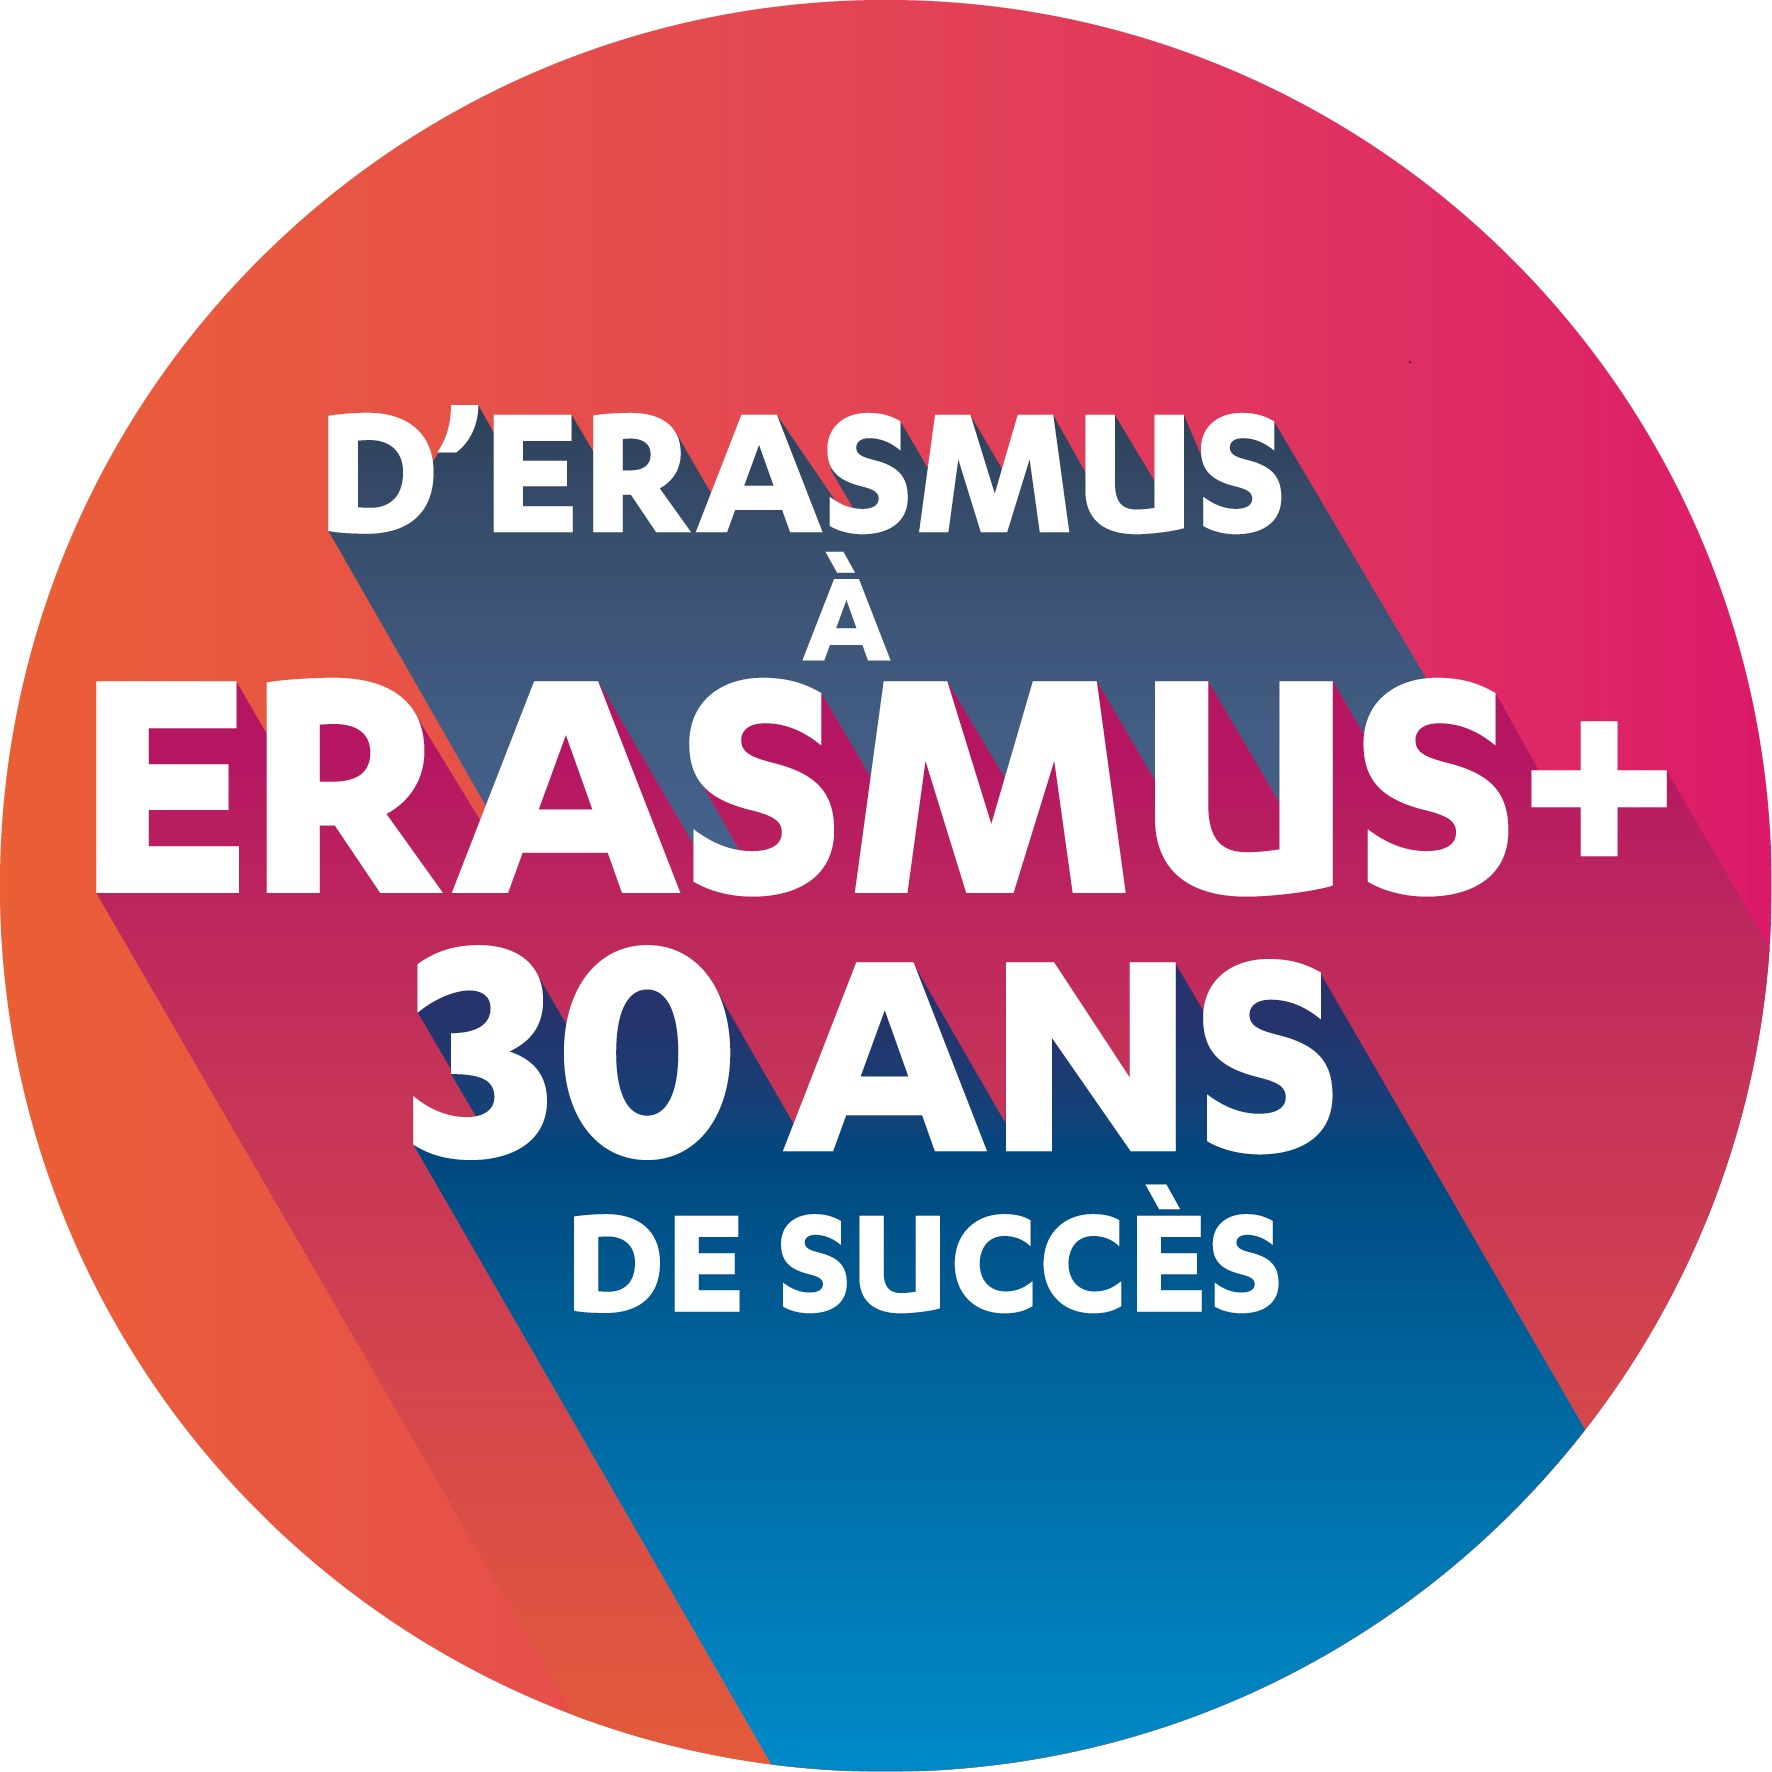 erasmusplus-30years-circle-fr-300dpi-003